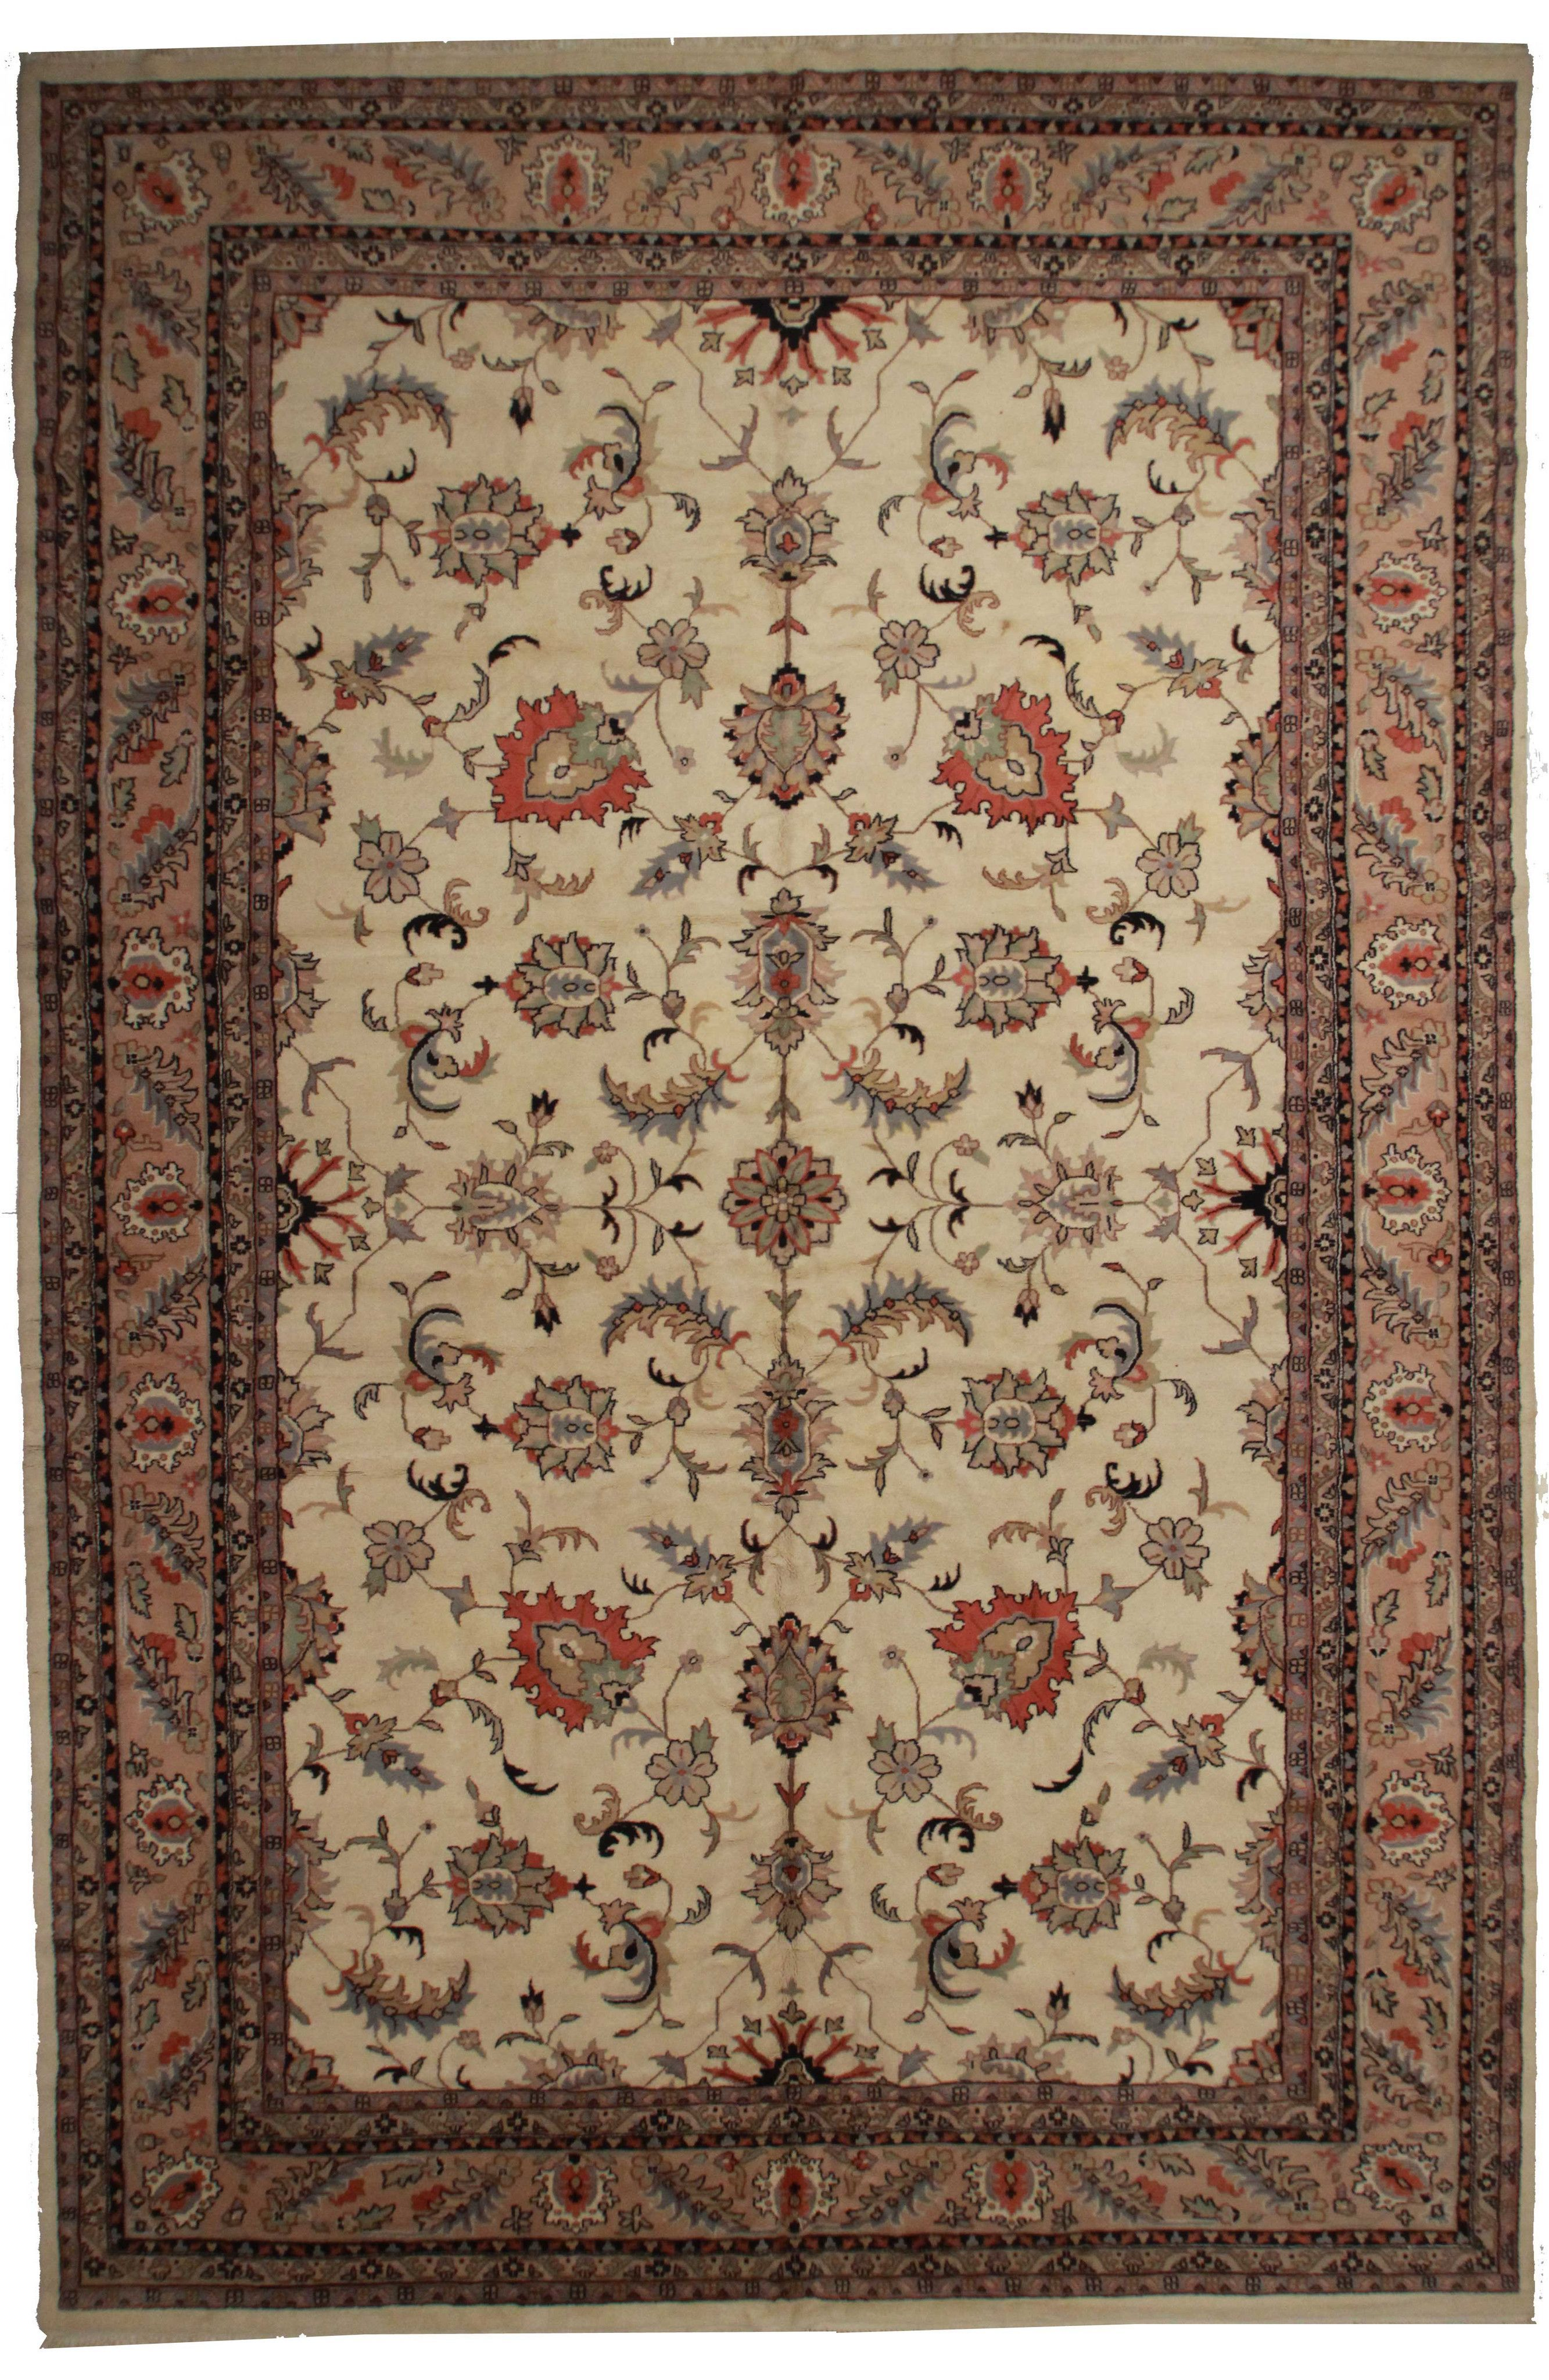 12 X 18 Vintage Hand Knotted Wool Indian Rug Persian Style Rug Indian Rugs Rugs Hand knotted wool rugs from india